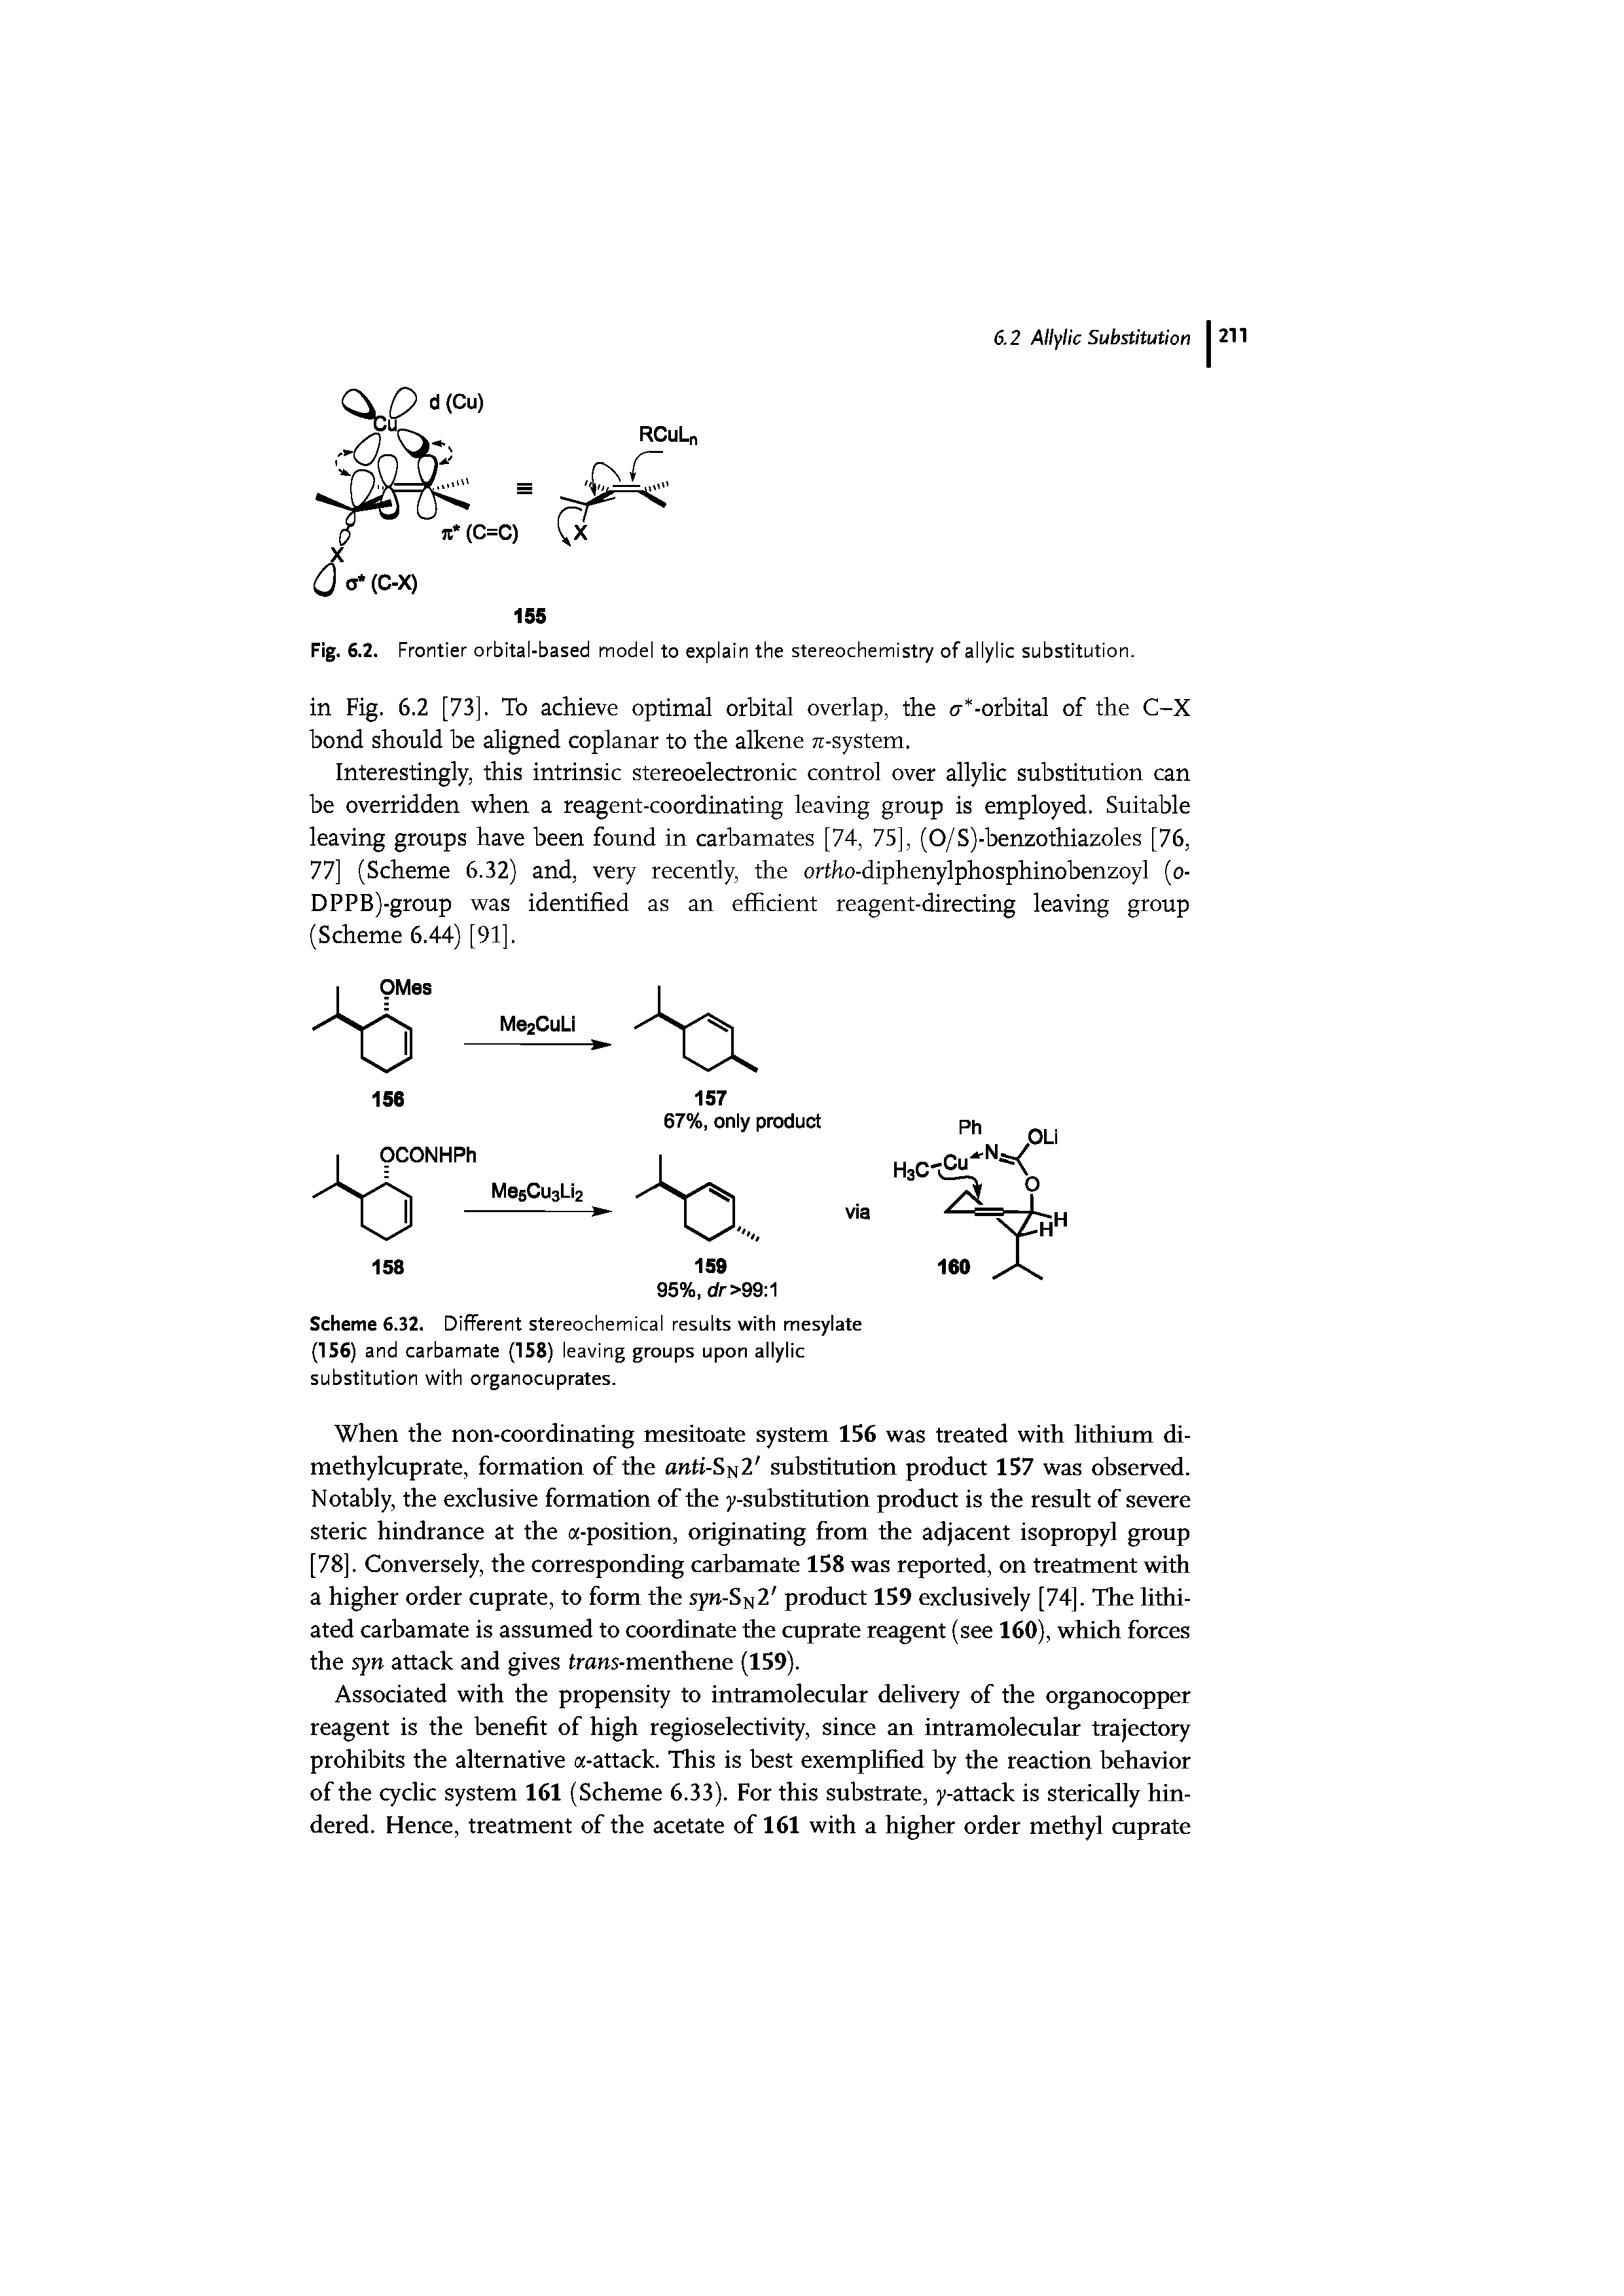 "Scheme 6.32. Different stereochemical results with mesylate (156) and carbamate (158) <a href=""/info/leaving_groups"">leaving groups</a> upon <a href=""/info/allylic_substitution"">allylic substitution</a> with organocuprates."